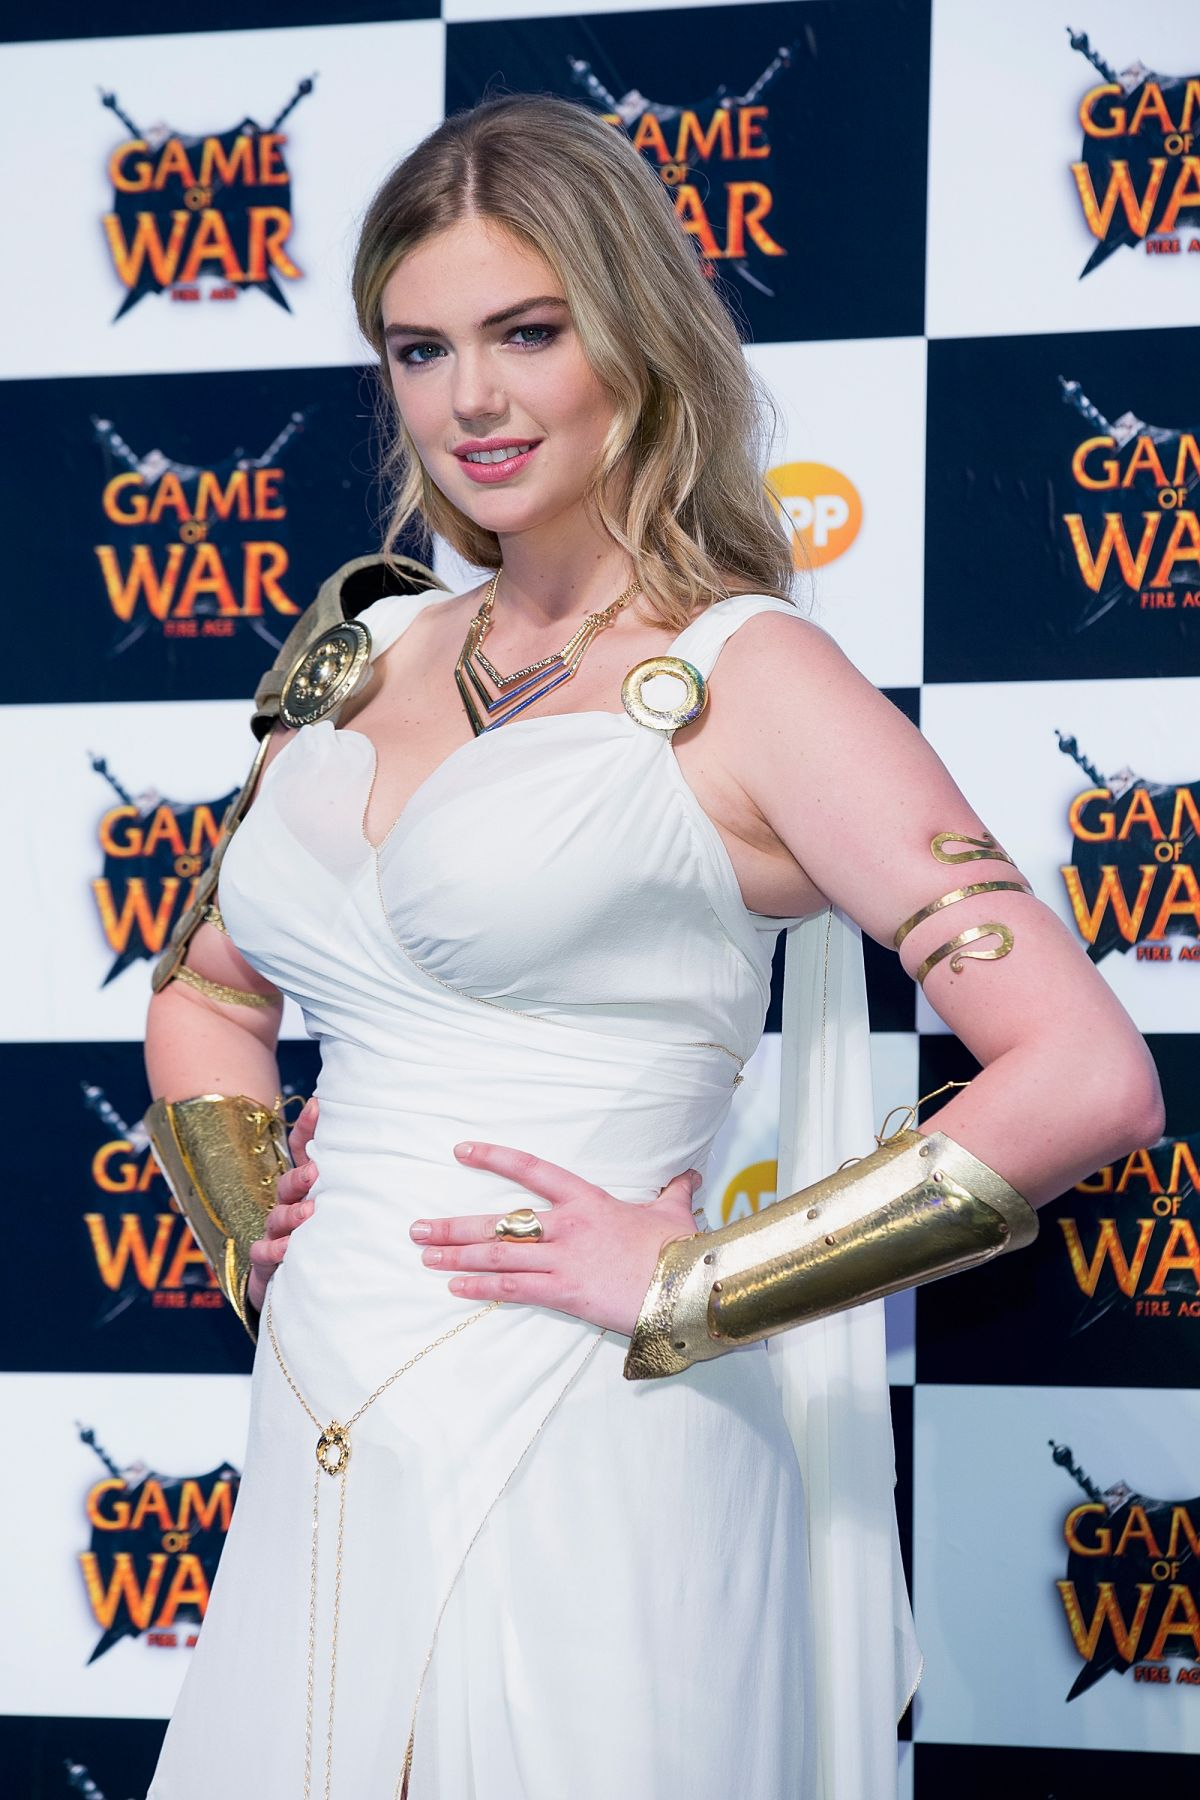 Kate upton at game of war fire age promotion in busan hawtcelebs